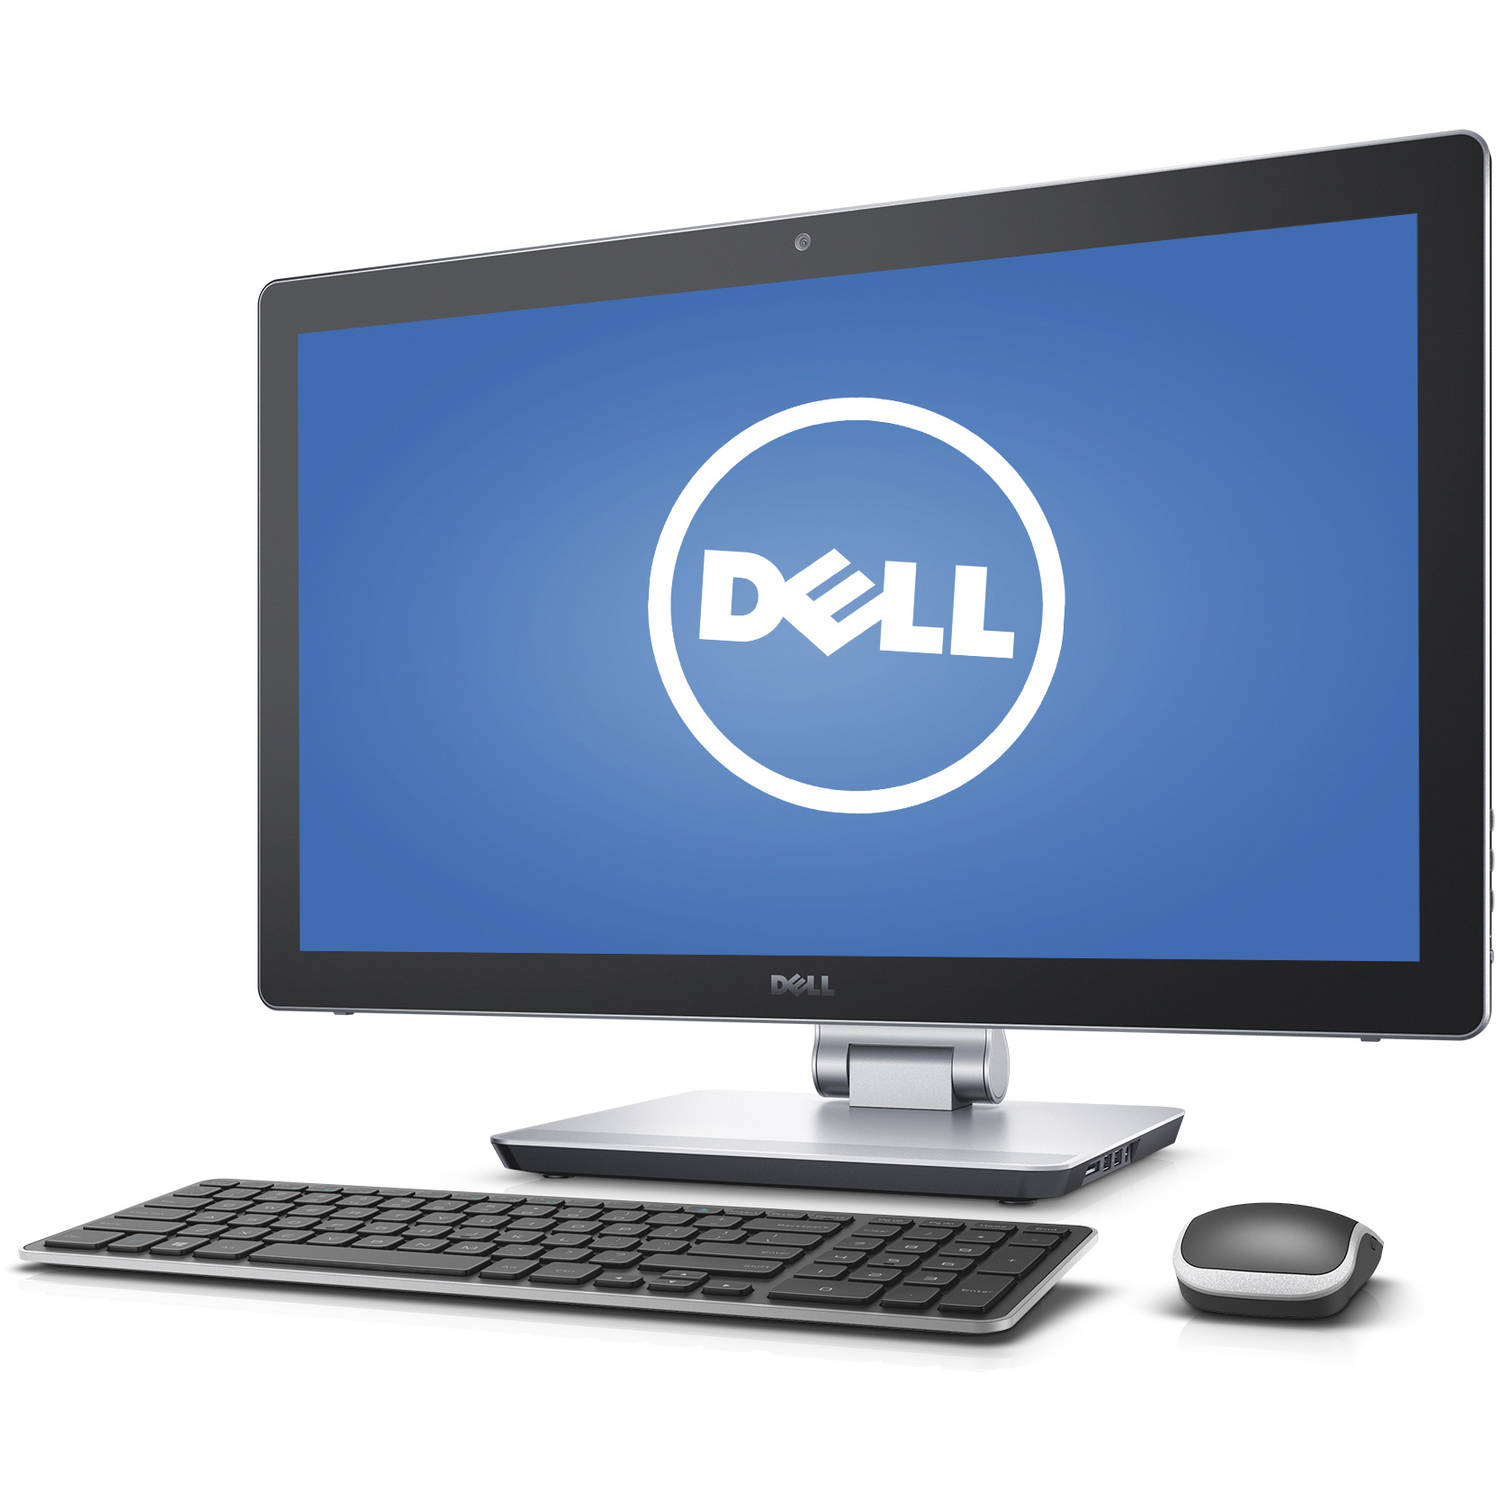 "Dell Inspiron 7459 All-in-One Desktop PC with Intel Core i7-6700HQ Processor, 16GB Memory, 23.8"" touch screen, 1TB Hard Drive and Windows 10 Home"